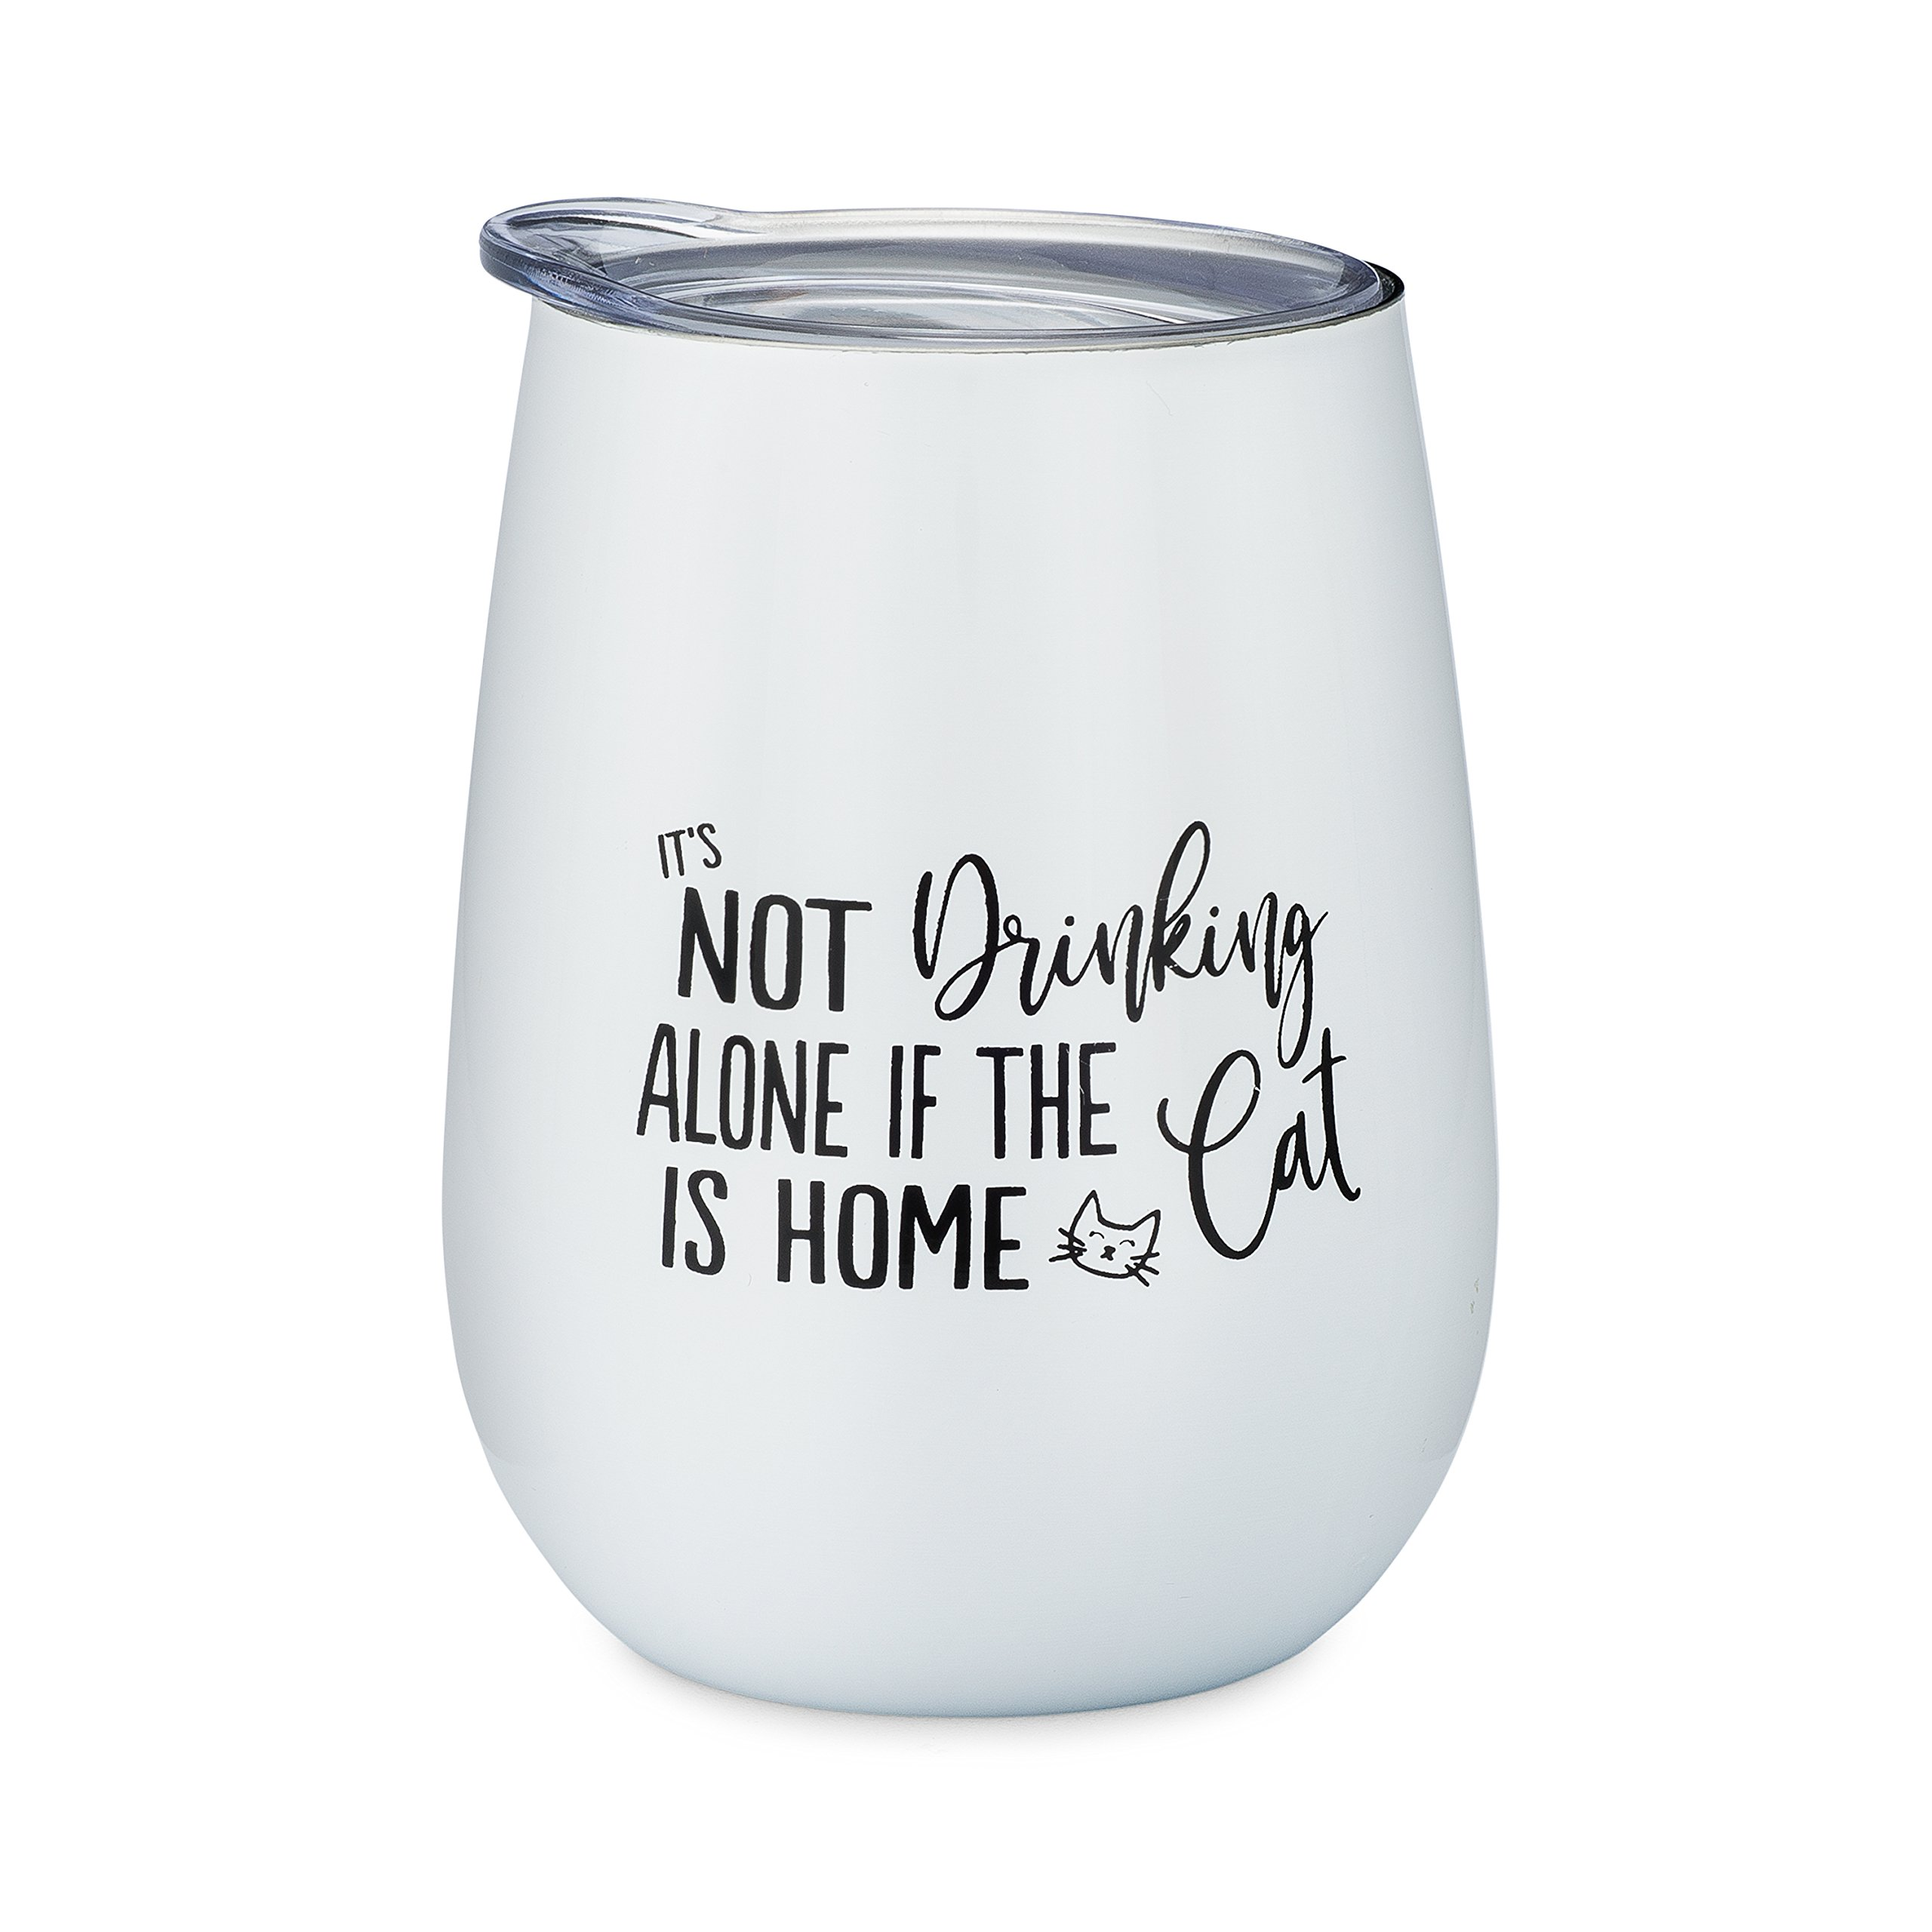 It's Not Drinking Alone If The Cat Is Home - 10 oz Stainless Steel Stemless Wine Glass with Lid - Wine Tumbler Sippy Cup for Adults - Funny Gift For Cat Lover